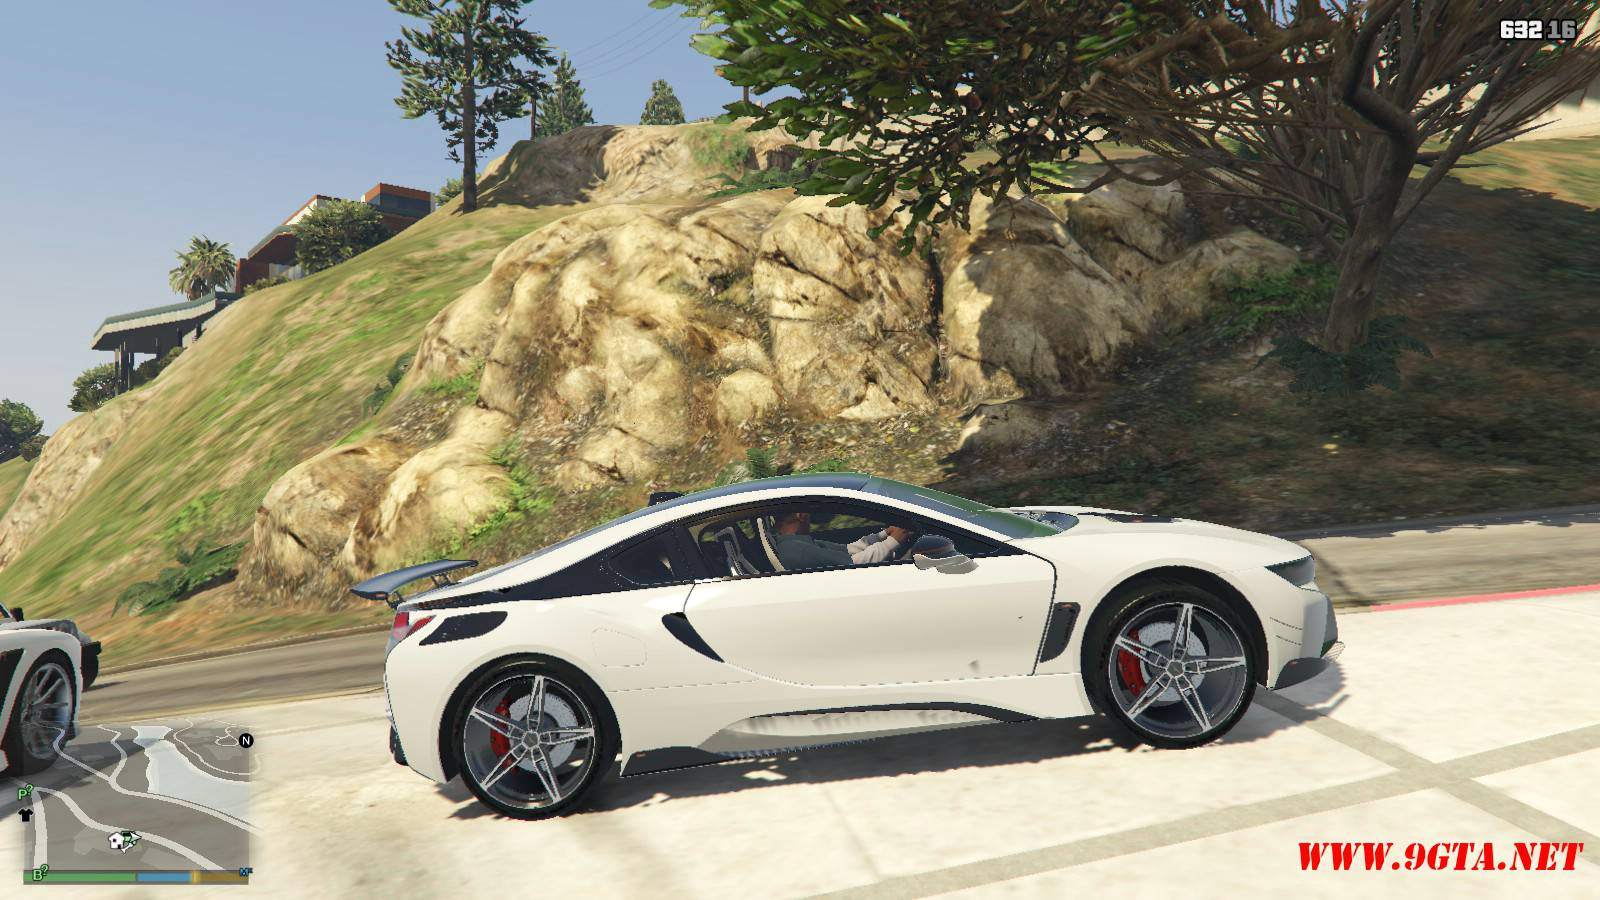 BMW i8 AC Schinitzer ACS8 Mod For GTA5 (7)